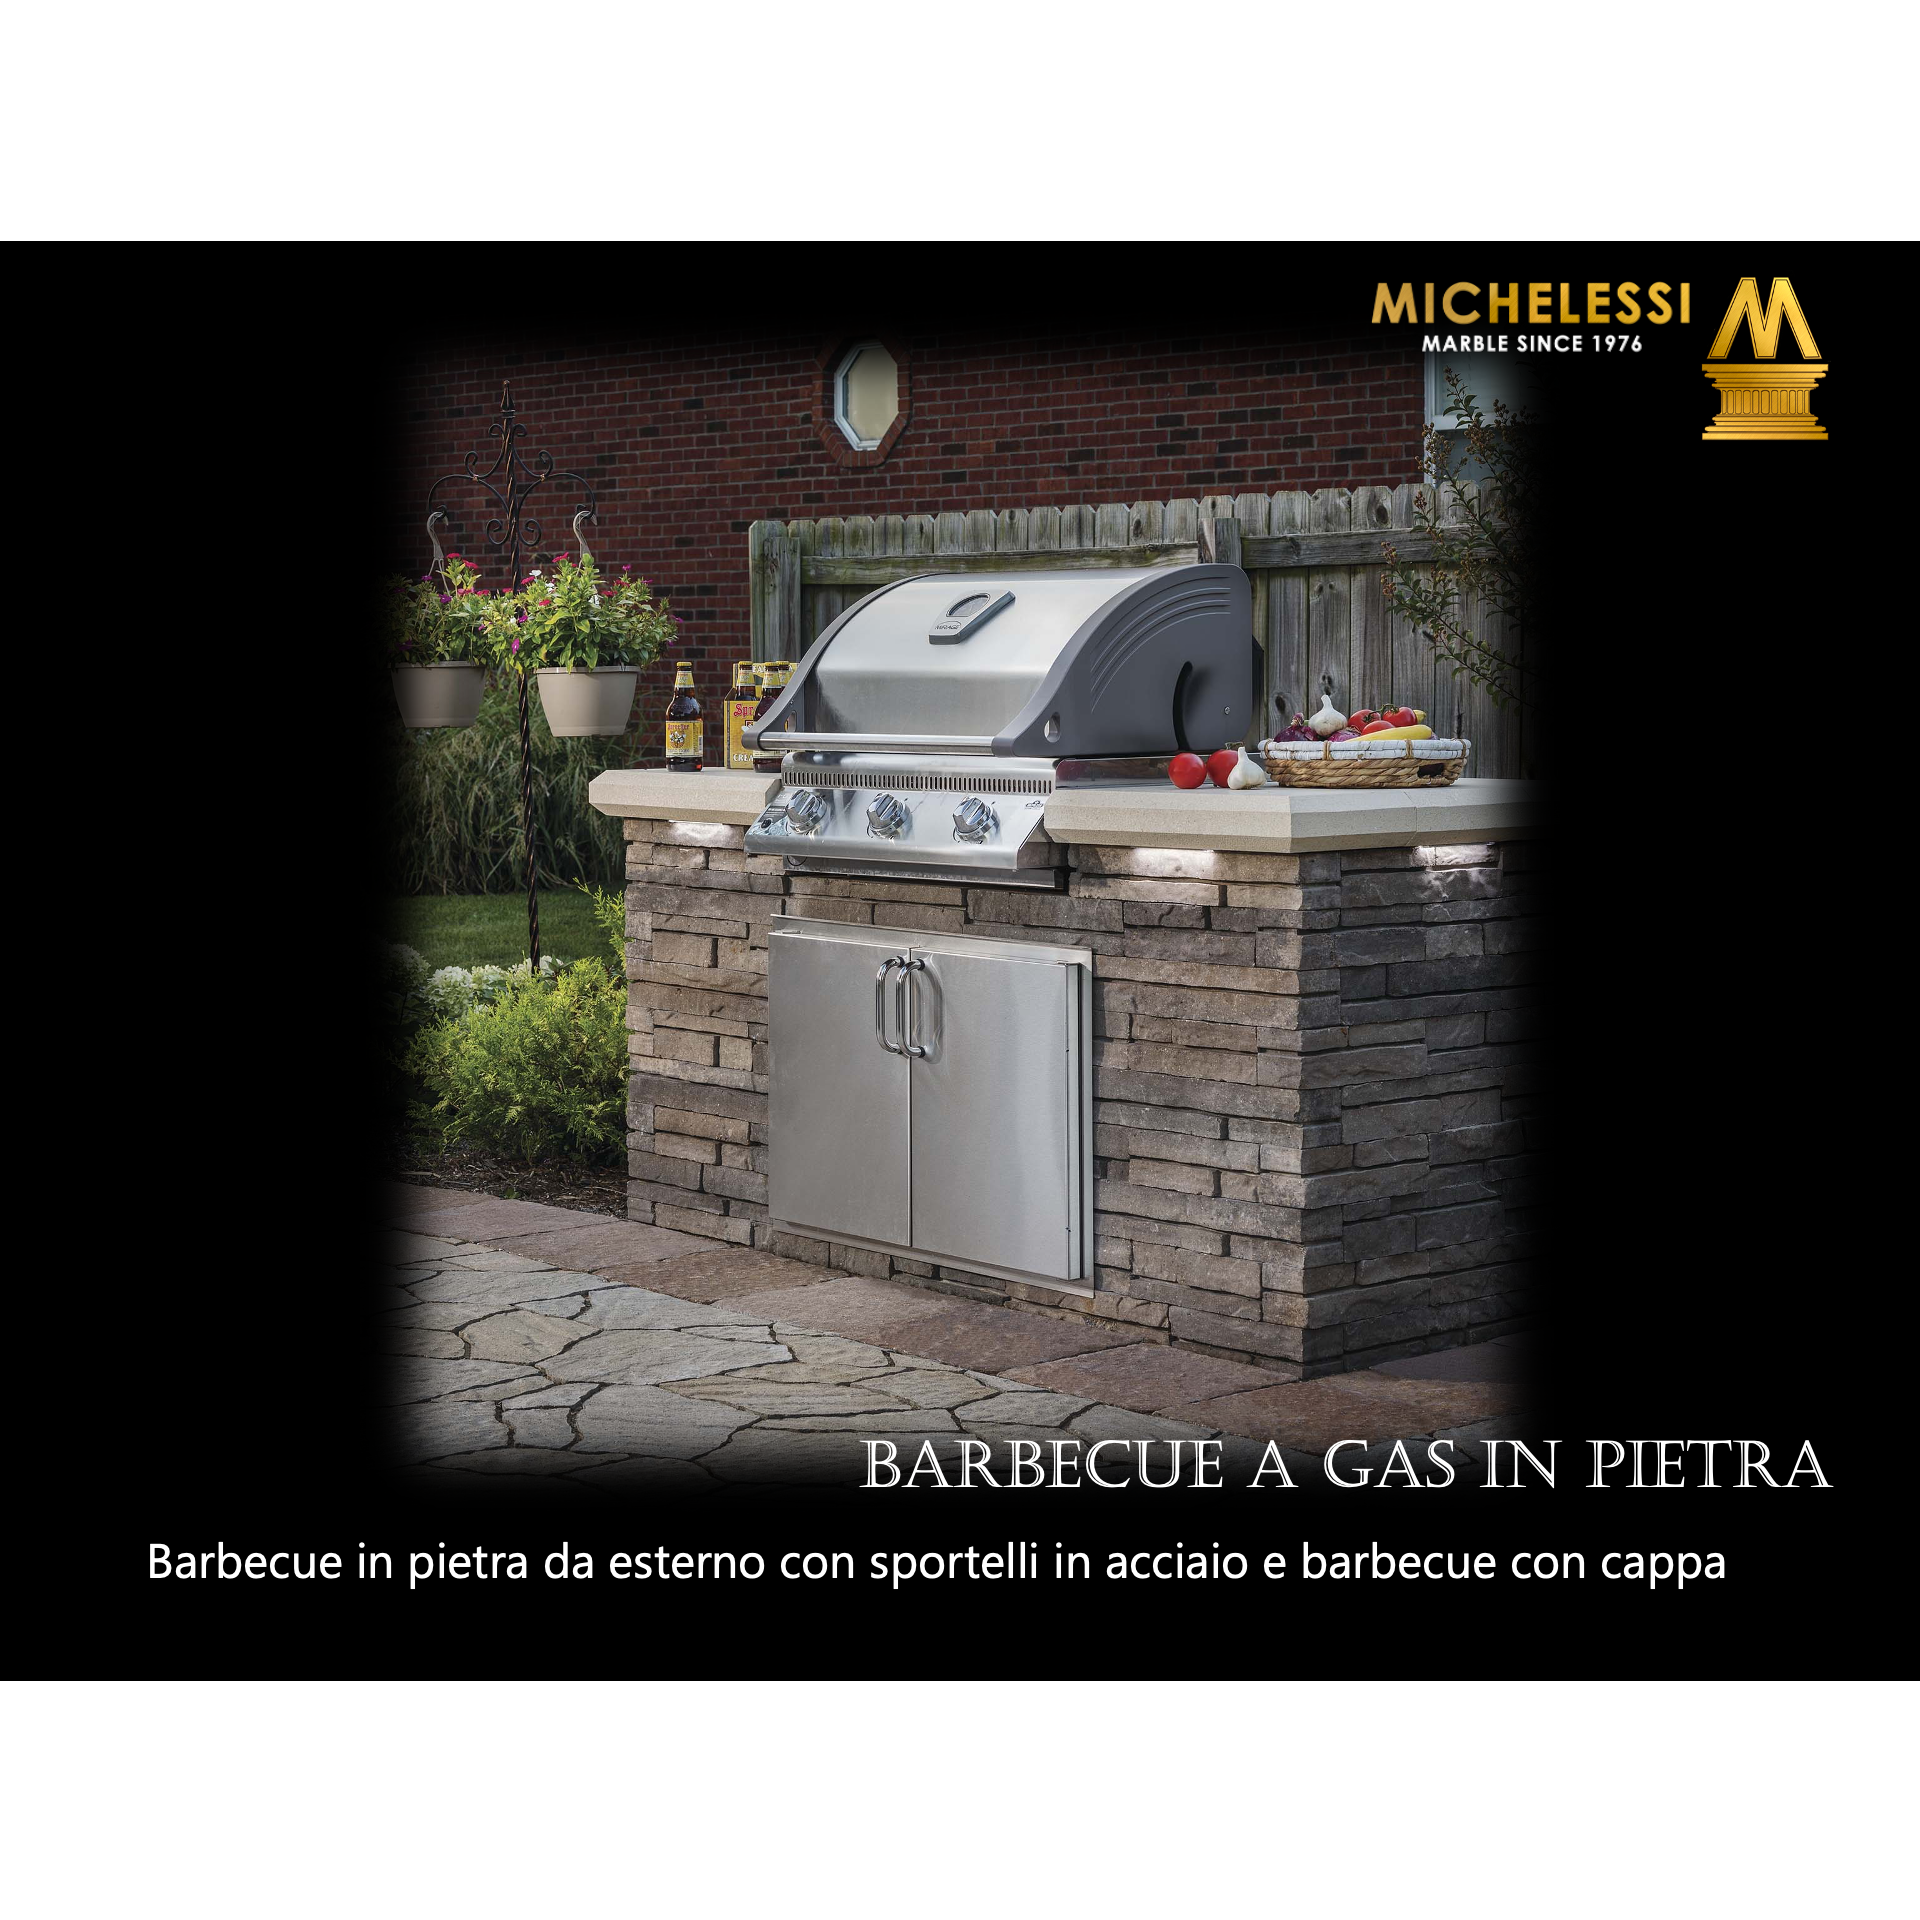 BARBECUE A GAS IN PIETRA